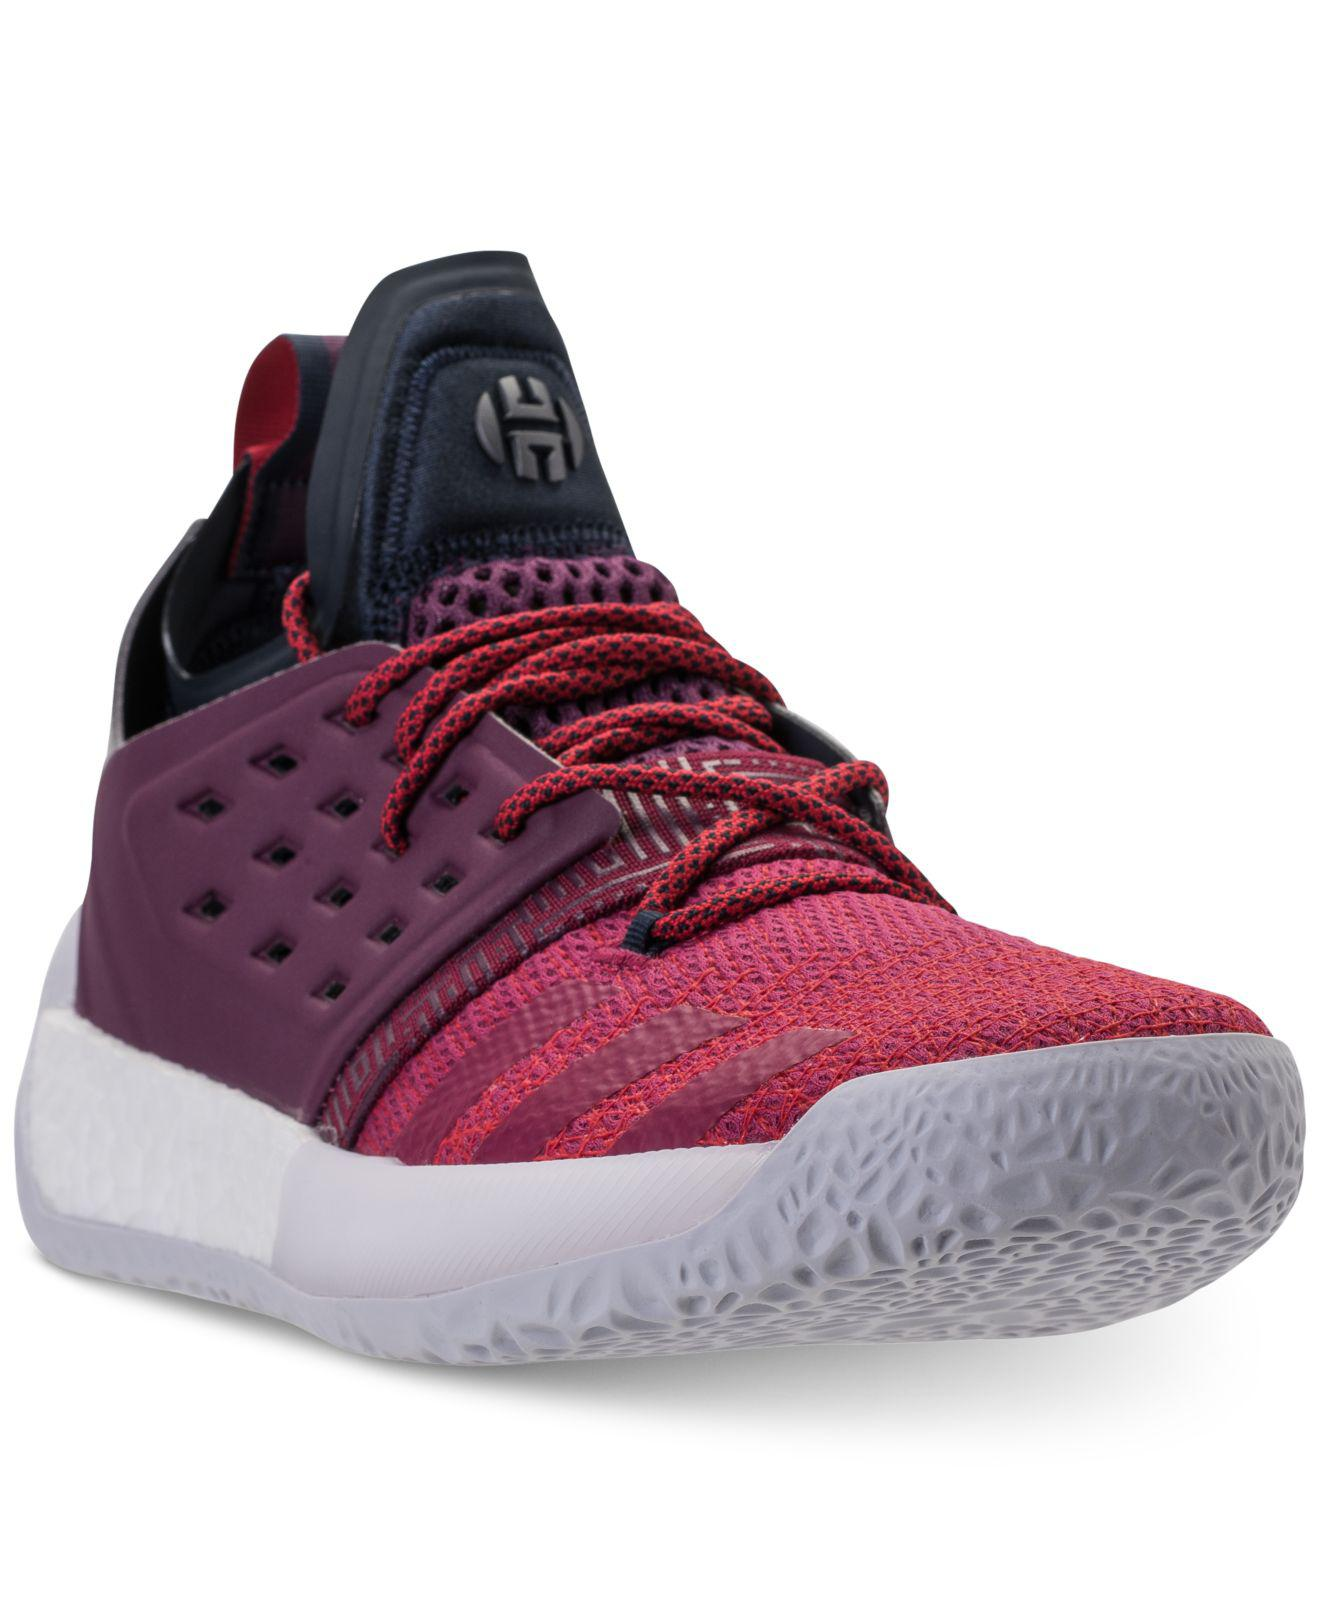 9c68a711ecb7 adidas Harden Vol.2 Basketball Sneakers From Finish Line in Purple ...